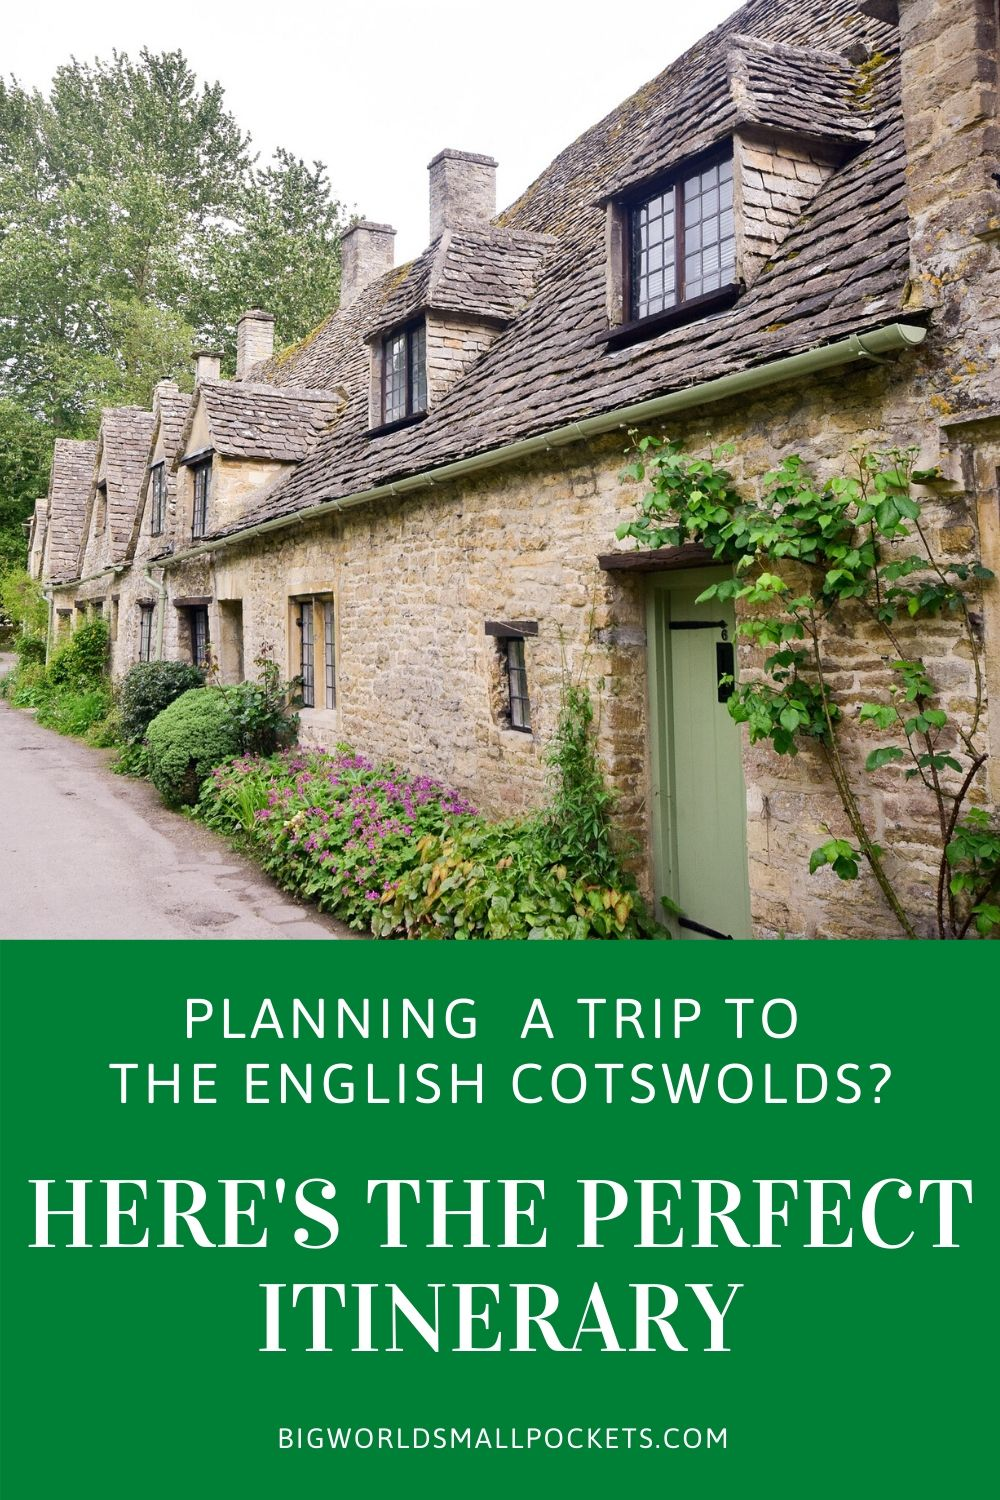 Travelling to the Cotswolds in England? Here's the Perfect Itinerary